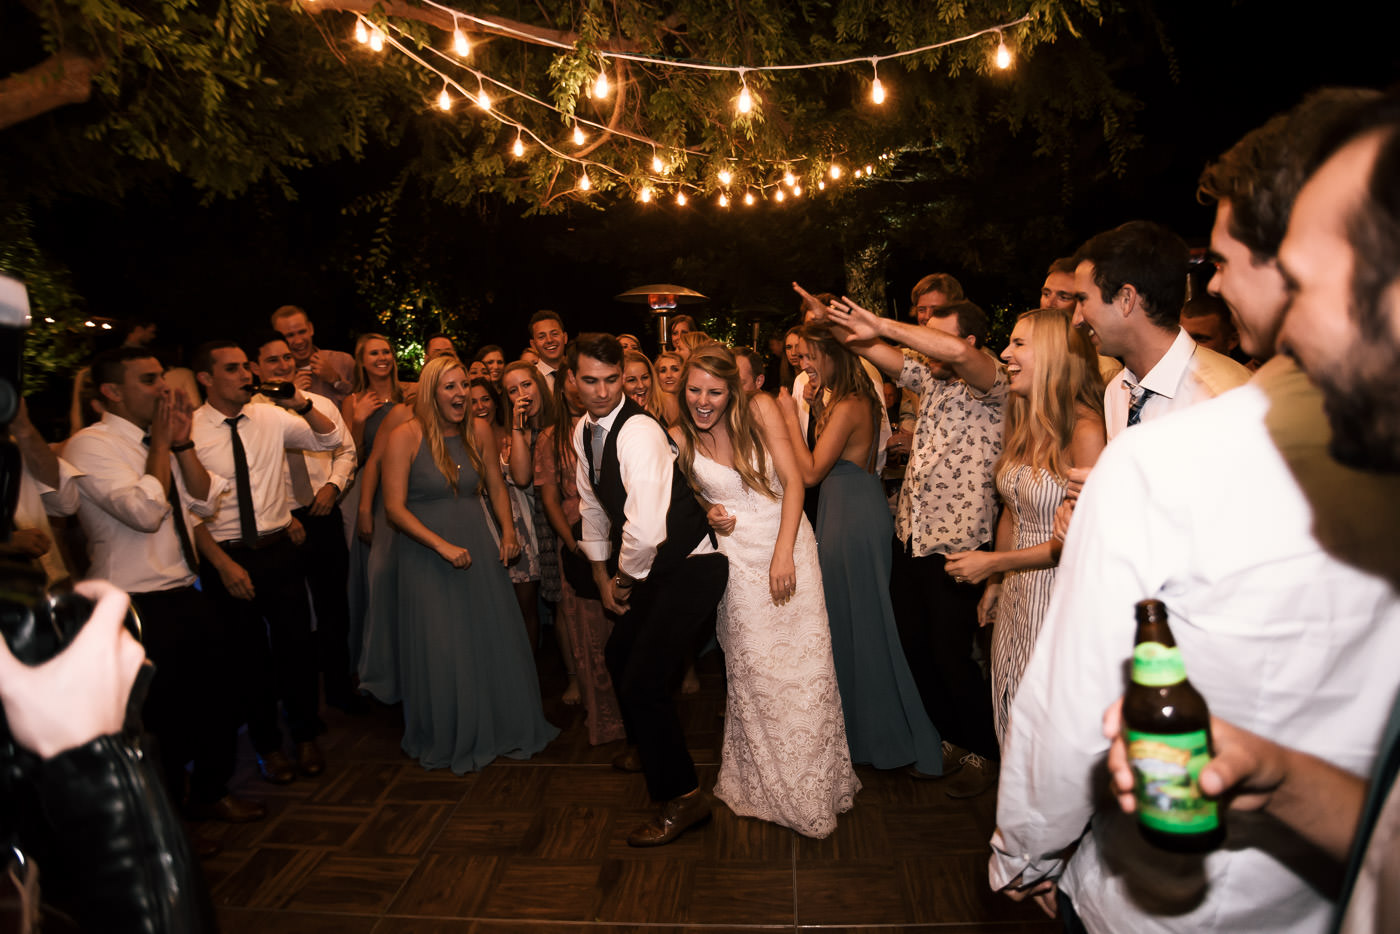 Newly married couples tears it up on the dance floor with their guests after their wedding.